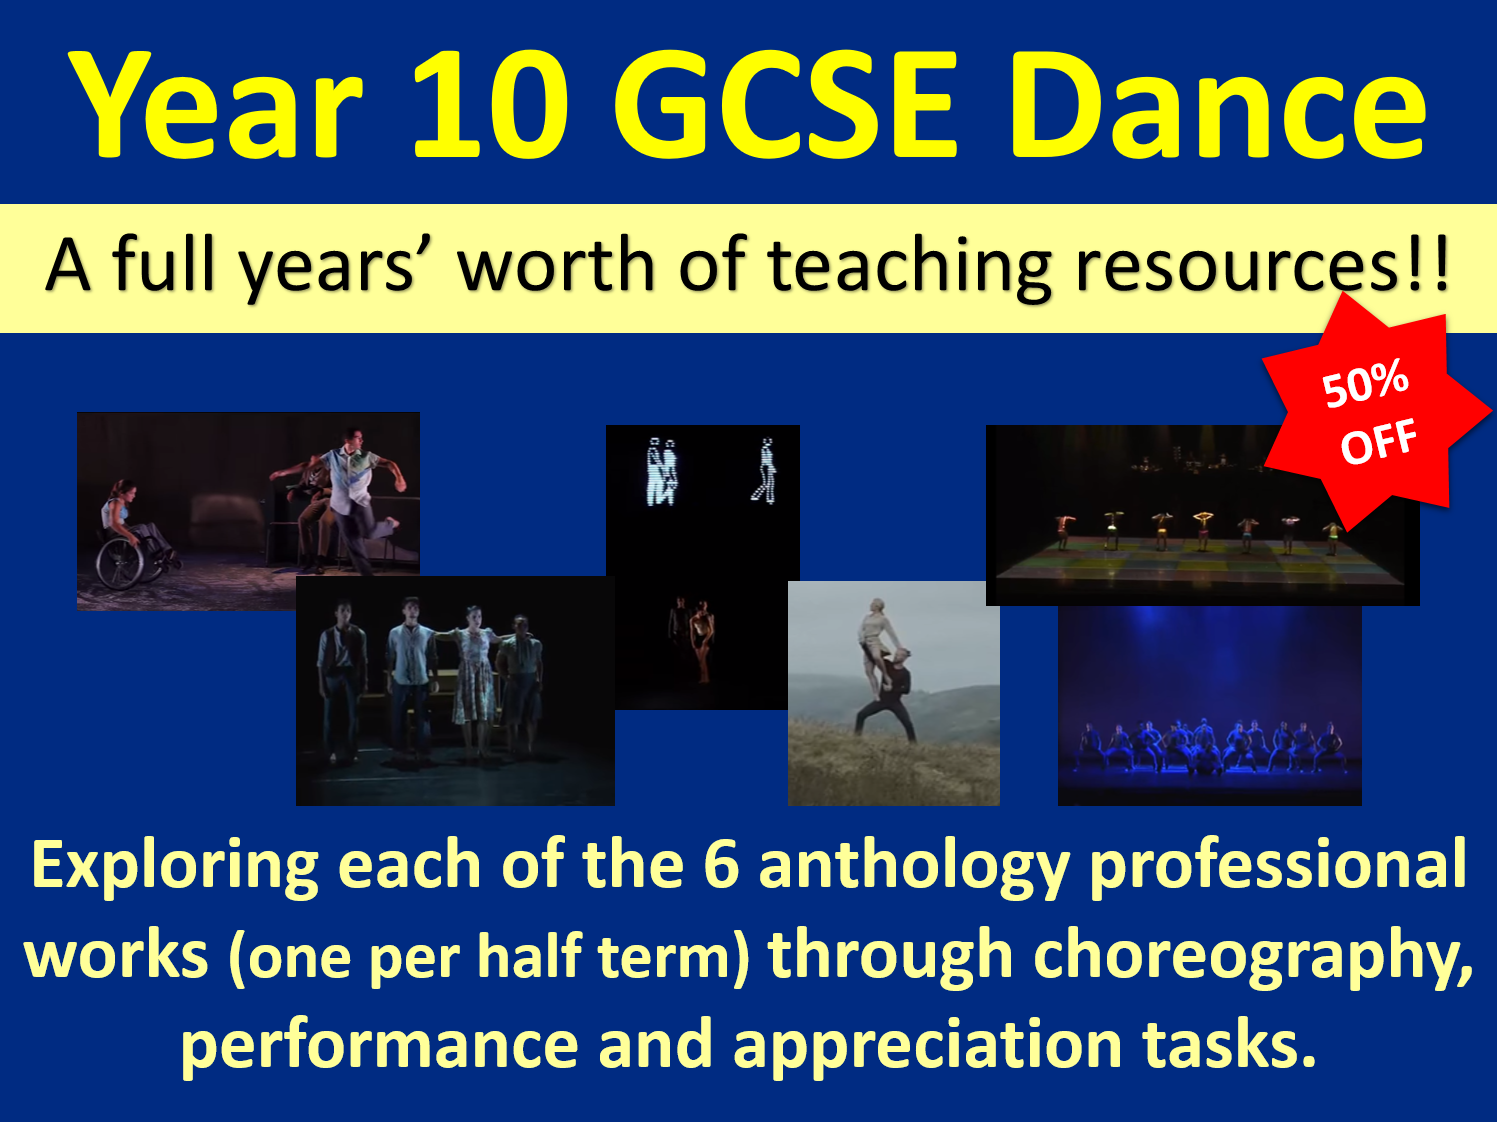 Y10 GCSE Dance: A years' worth of teaching resources!!